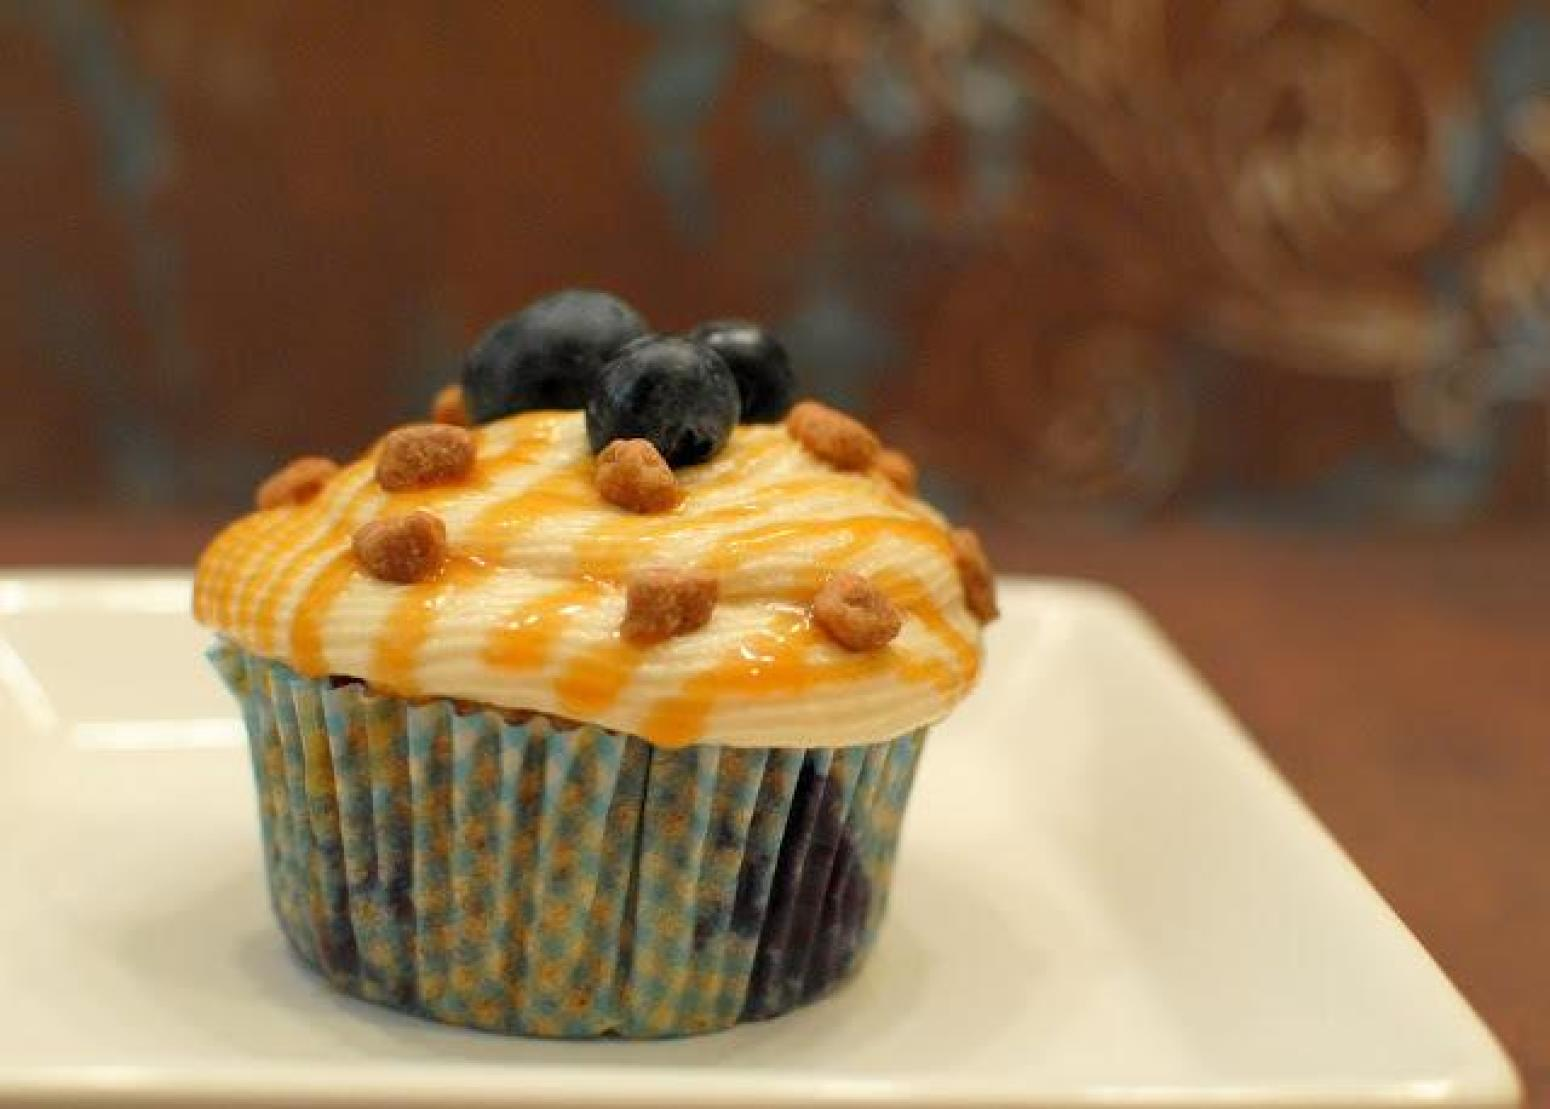 Blueberry Caramel Pecanbon Cupcakes Recipe 2 | Just A Pinch Recipes